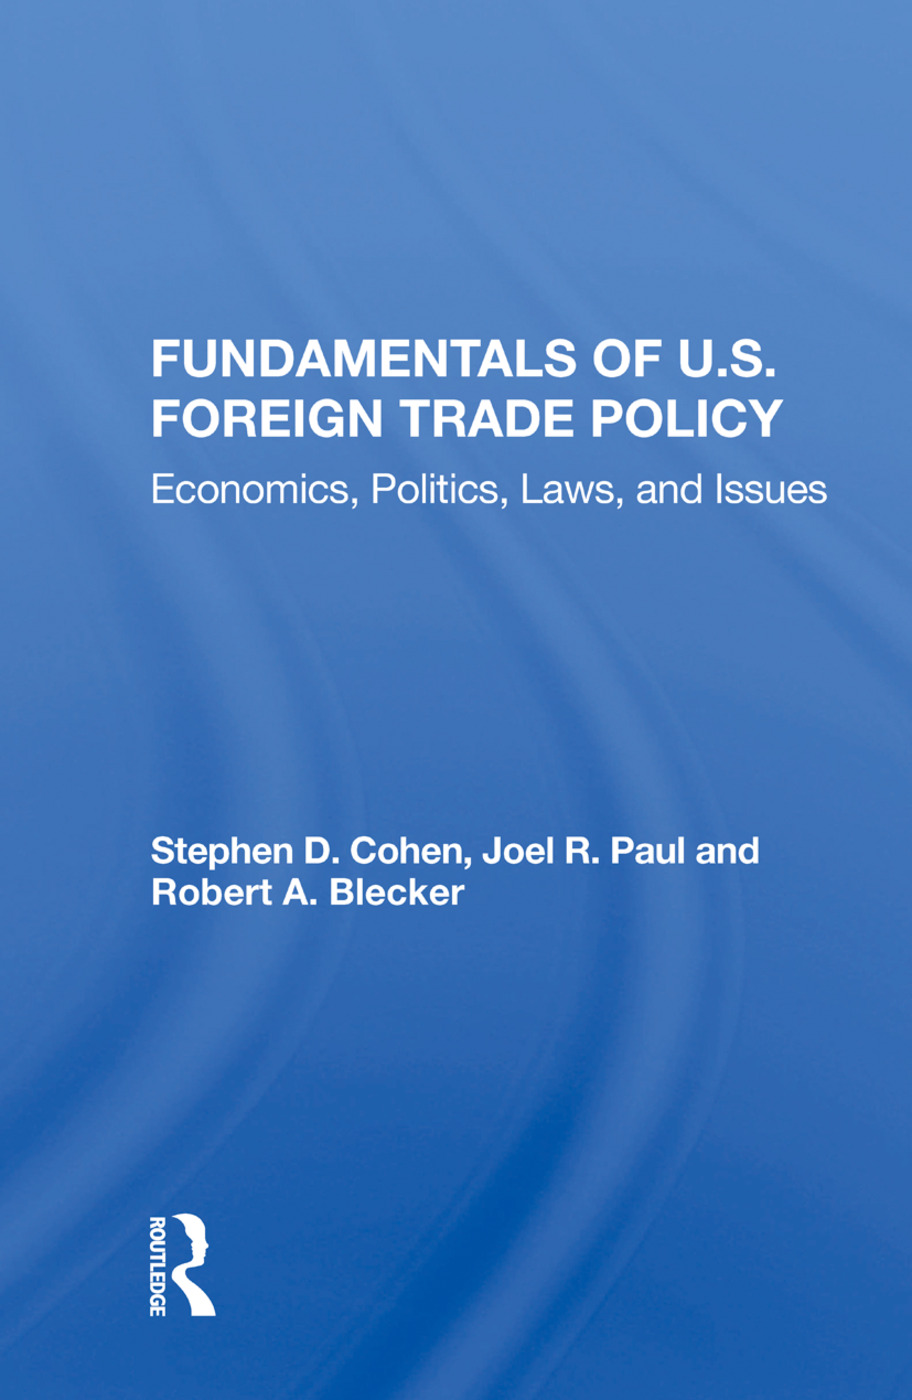 Fundamentals Of U.s. Foreign Trade Policy: Economics, Politics, Laws, And Issues, 1st Edition (Paperback) book cover